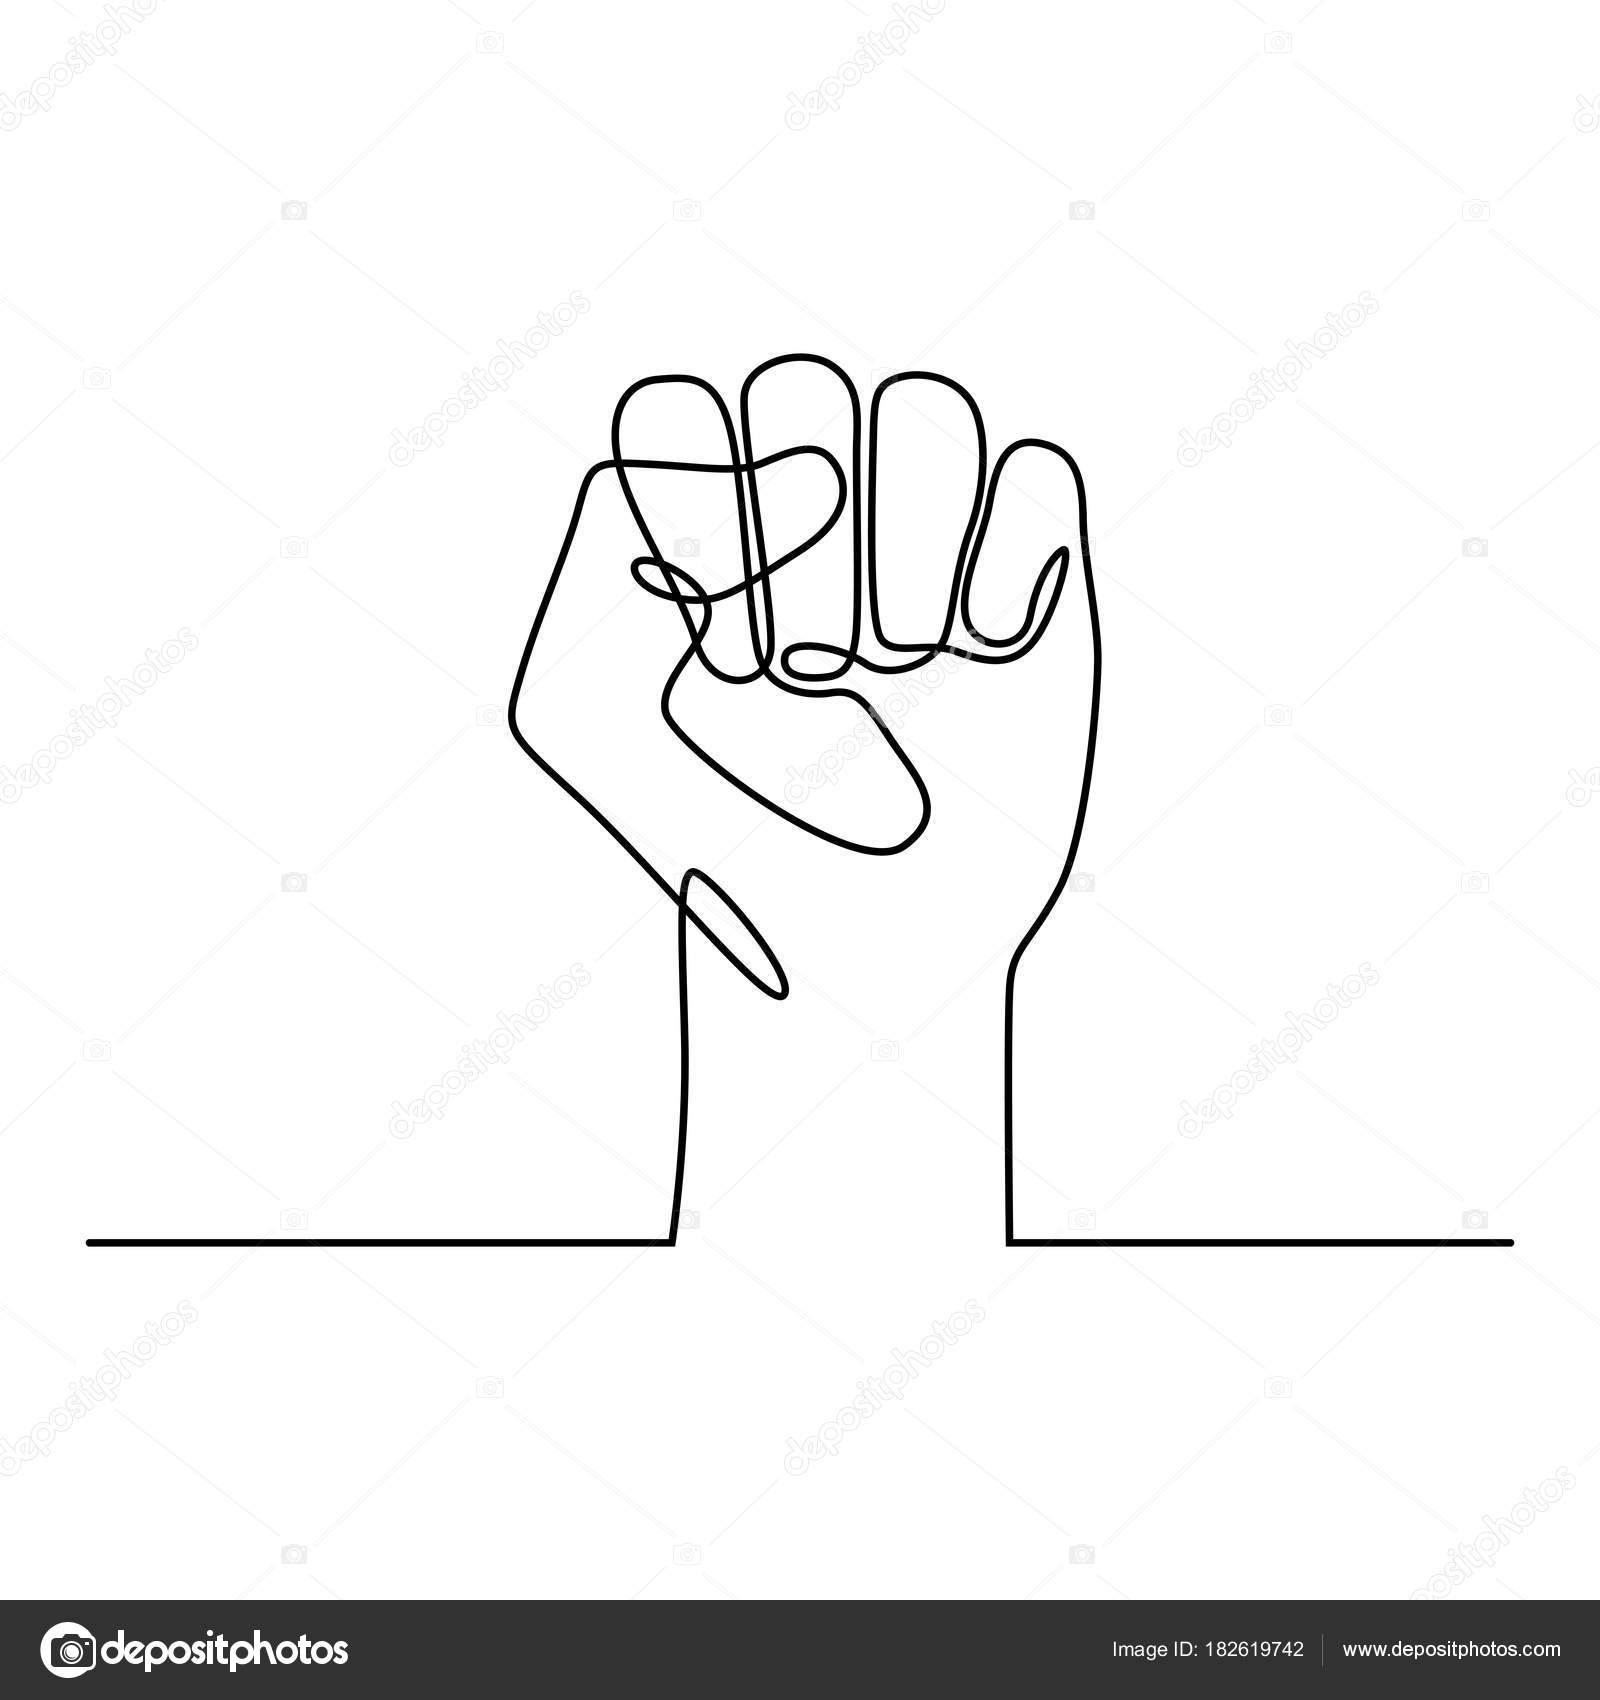 fist outline drawing